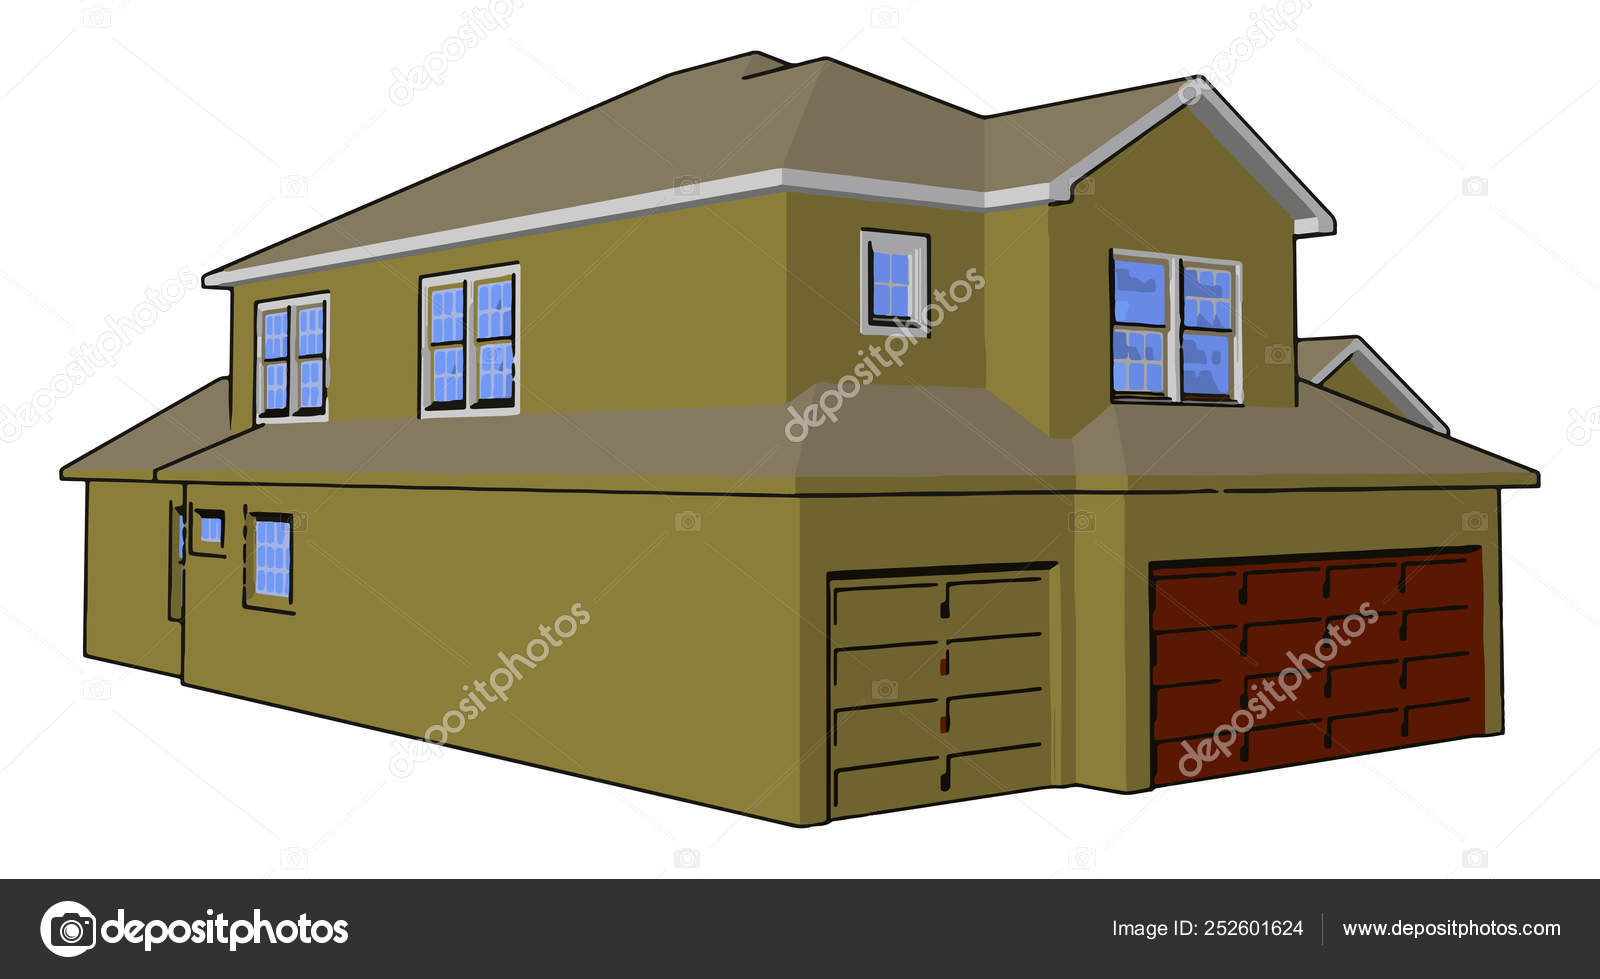 Terrific Basic Components Of House Vector Or Color Illustration Download Free Architecture Designs Scobabritishbridgeorg